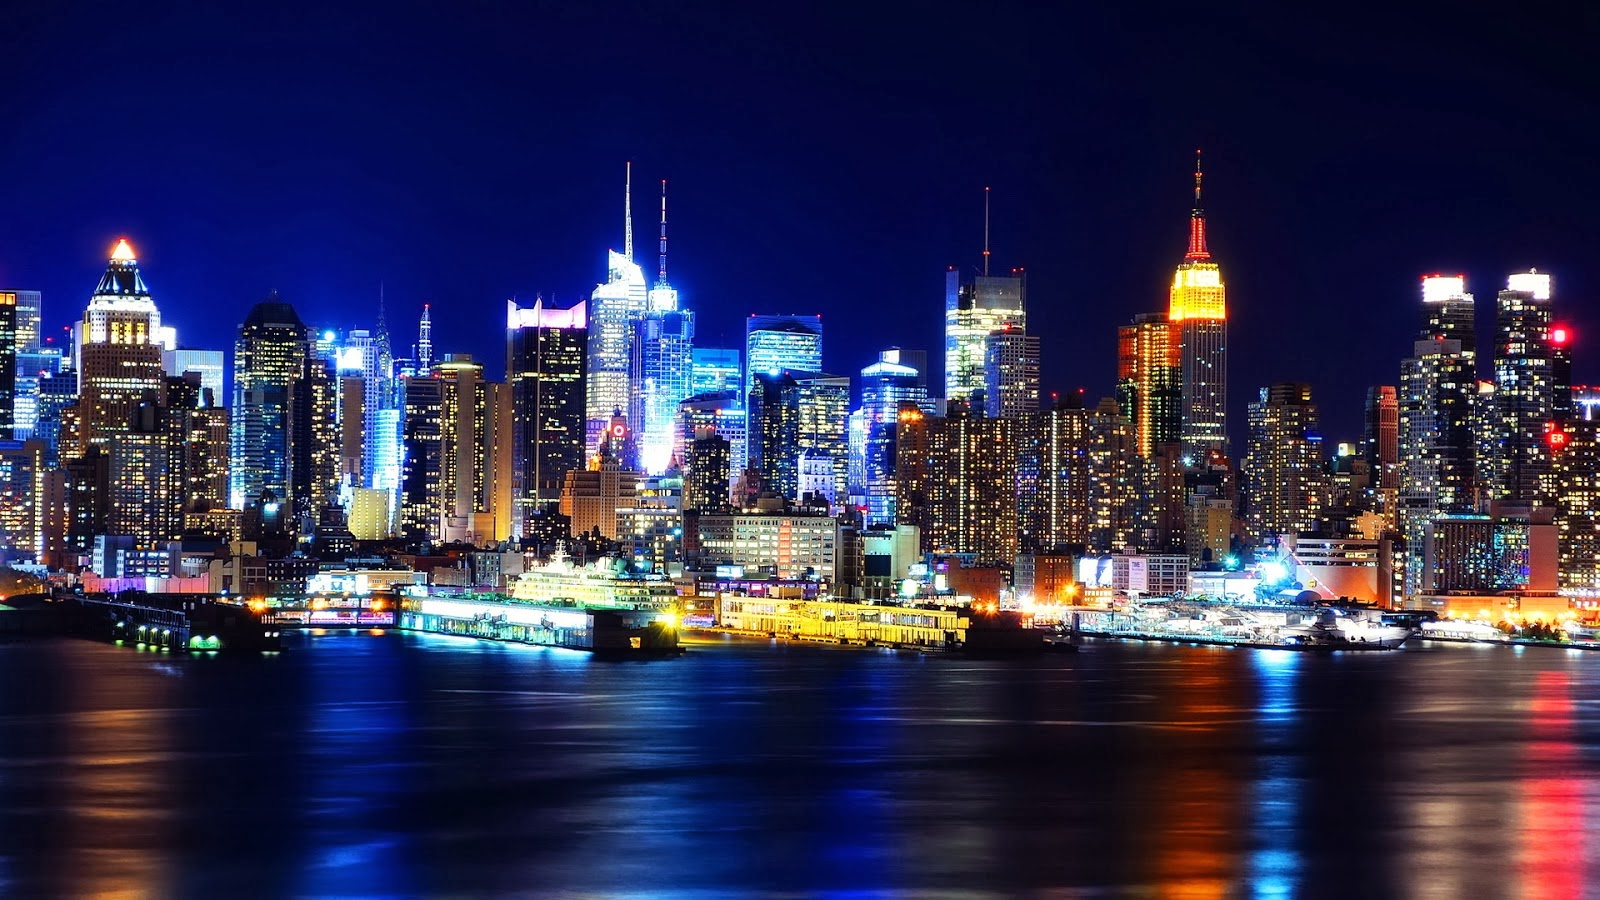 city hd wallpapers 1080p download new york city hd wallpapers 1080p 1600x900